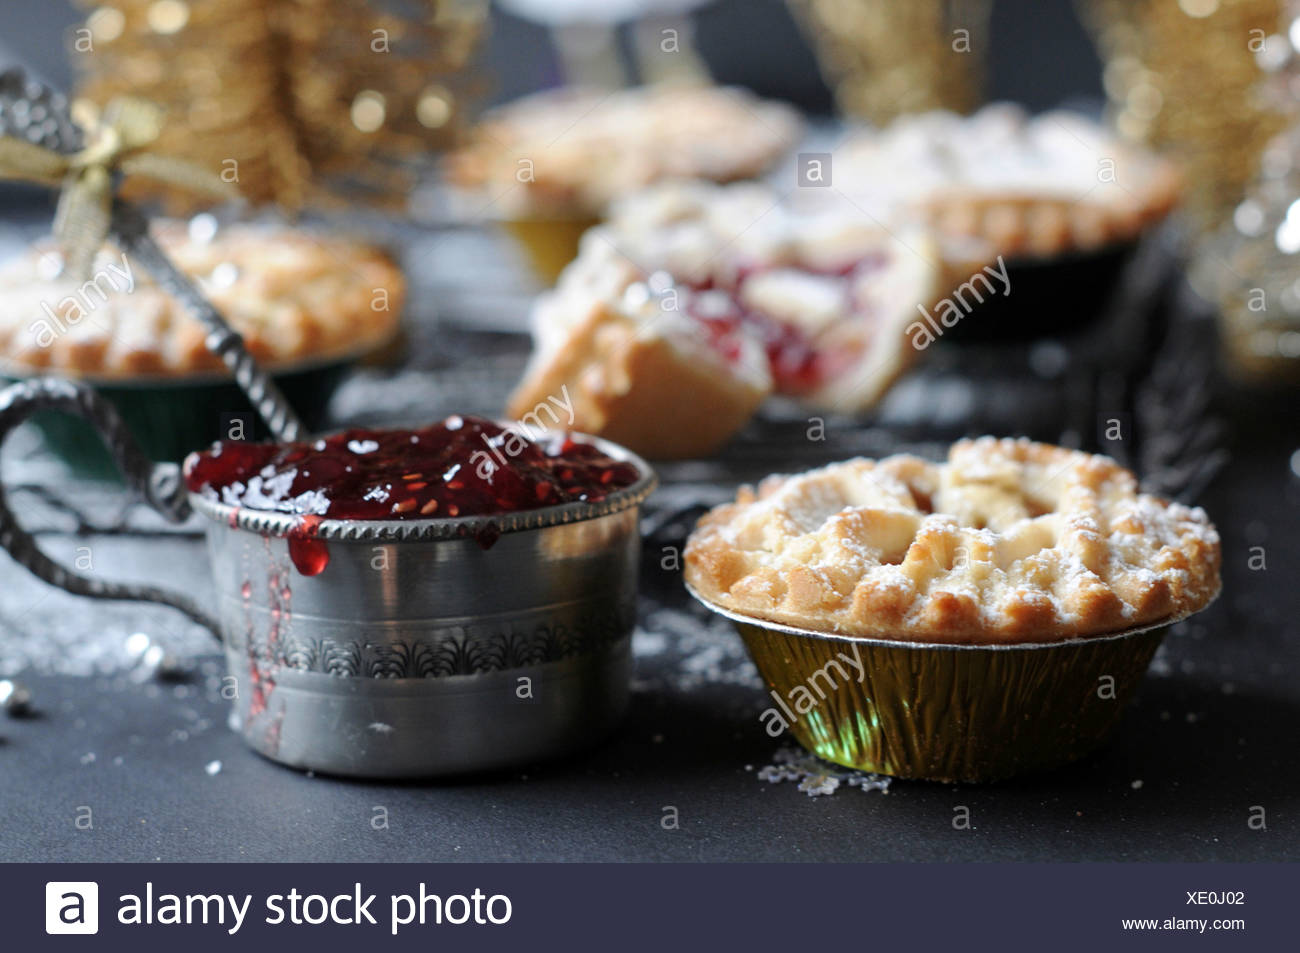 Small pastry filled with raspberry jam - Stock Image